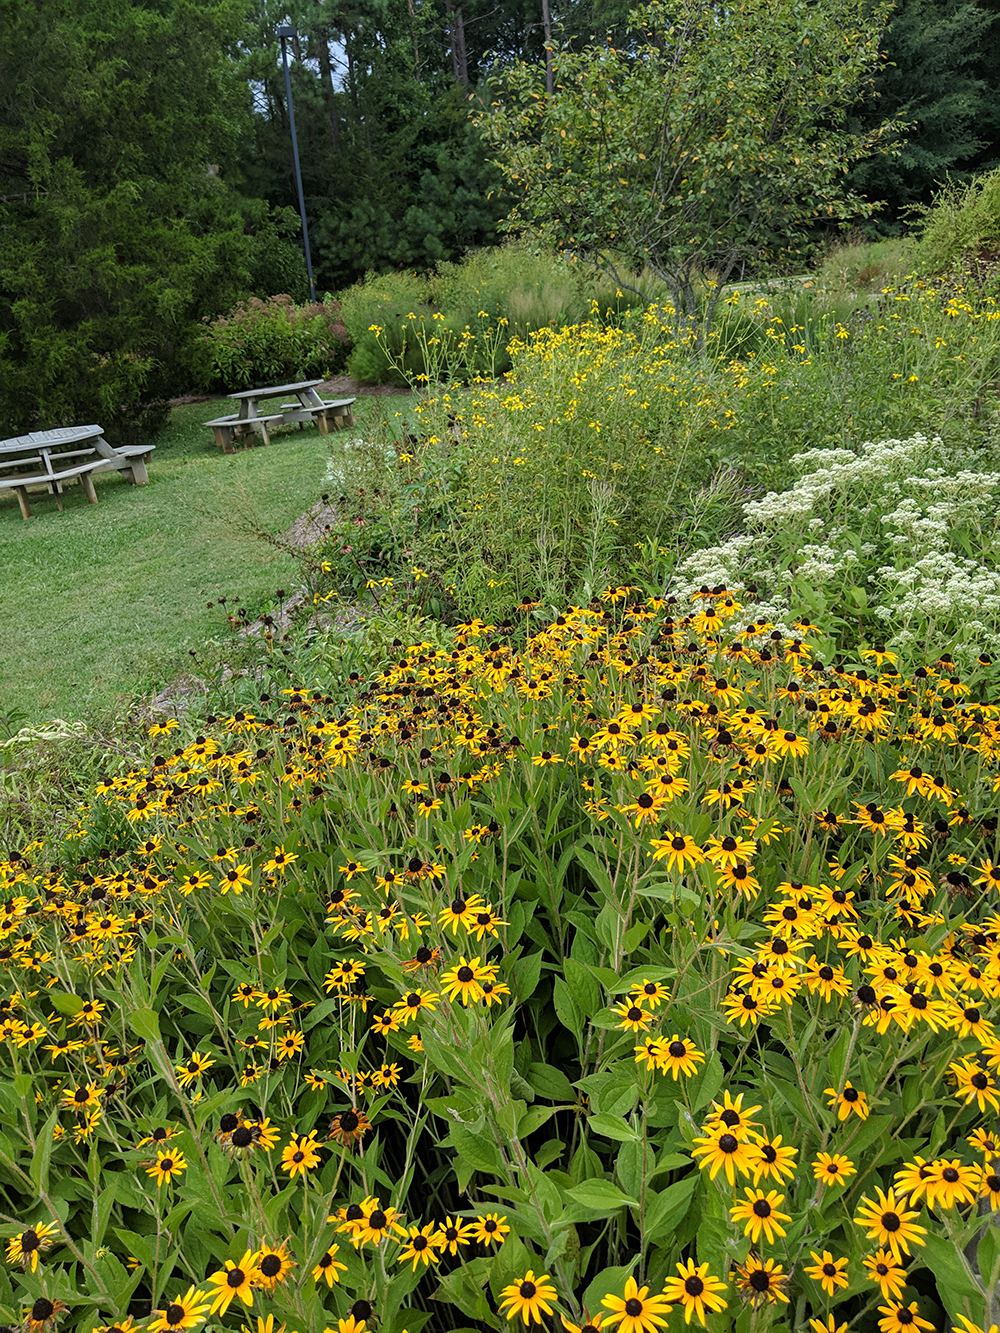 Early August view of one of the pollinator garden beds.